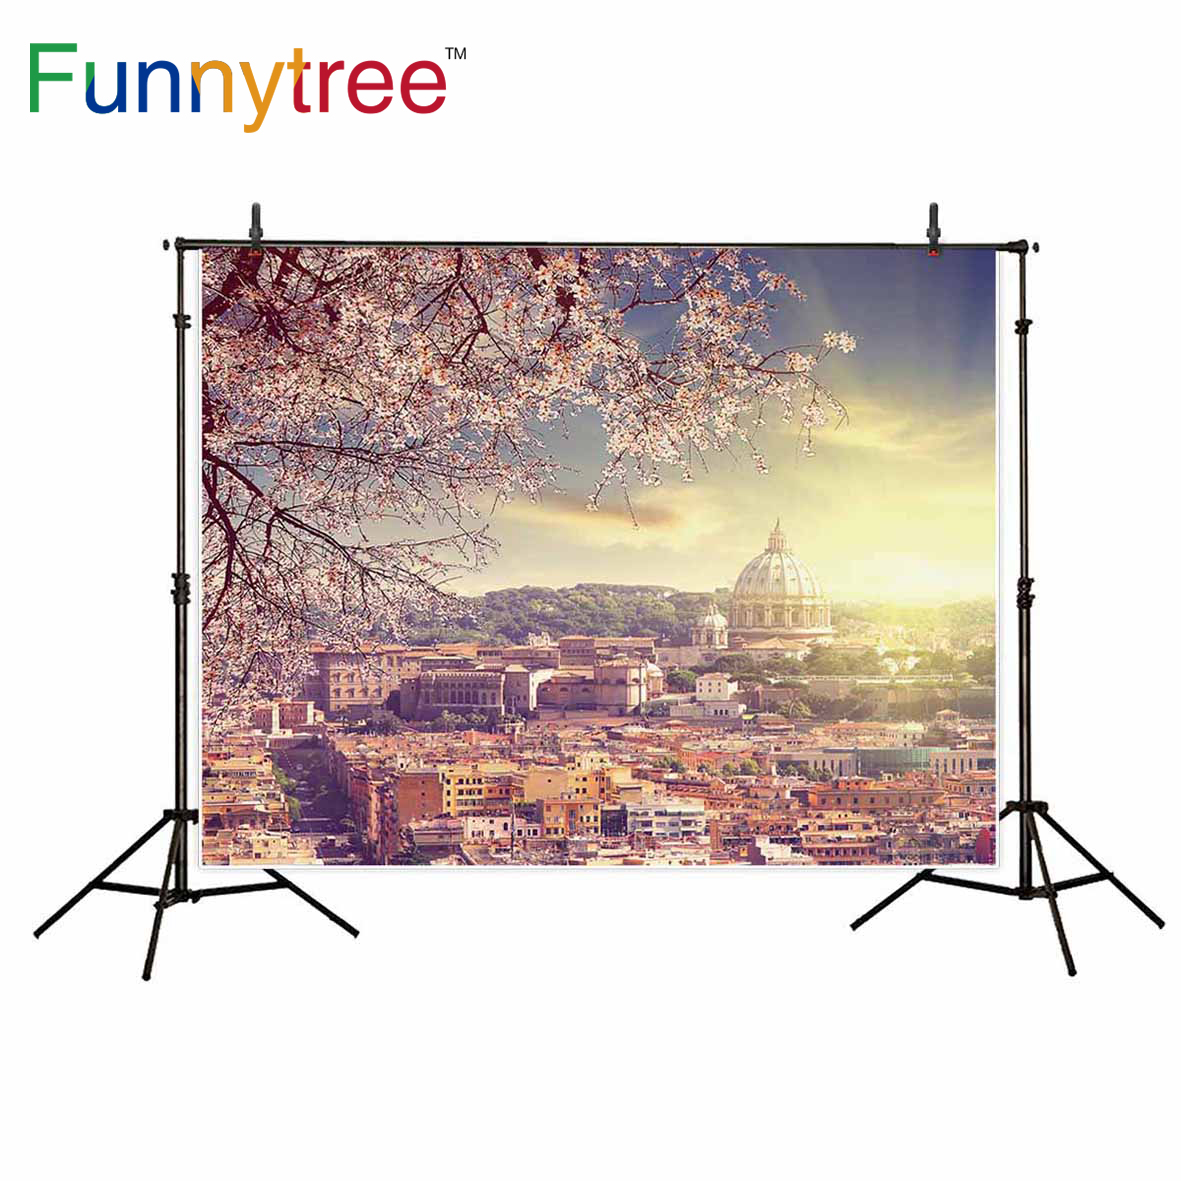 Funnytree photography backdrop spring Cherry blossoms ancient city building background photo studio photographic decor electrolux ehh 6340 fok